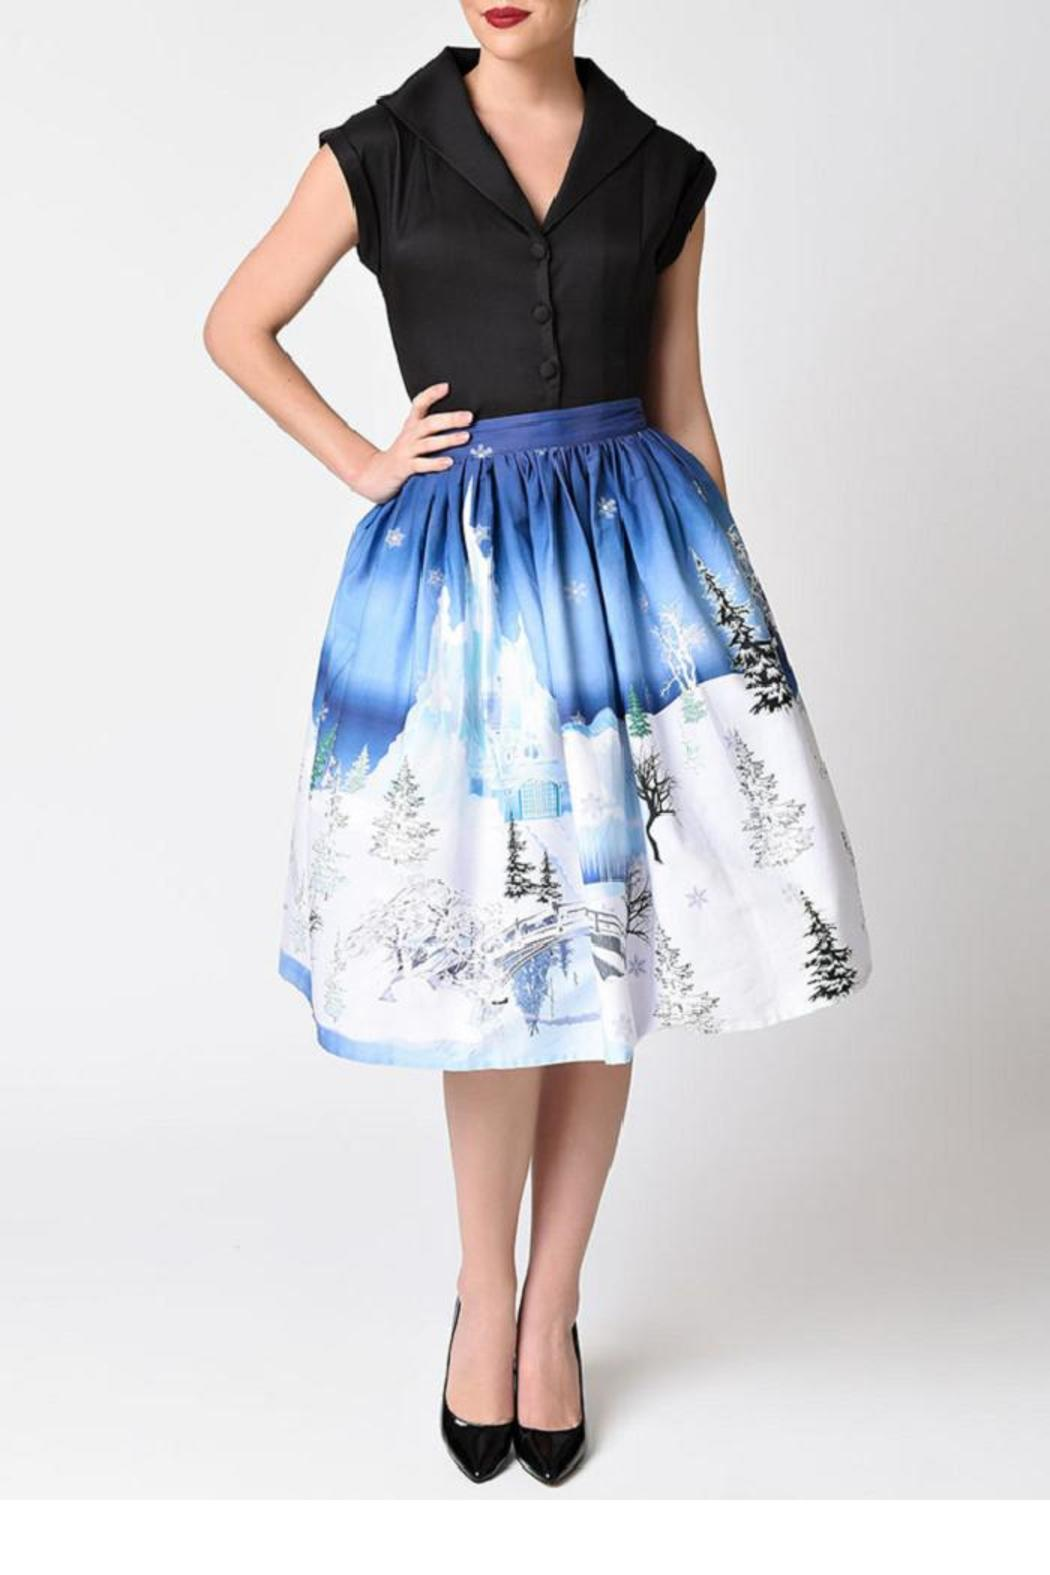 ca77d2a506ed Unique Vintage Winter Kingdom Skirt from Omaha by Daisy Jones ...